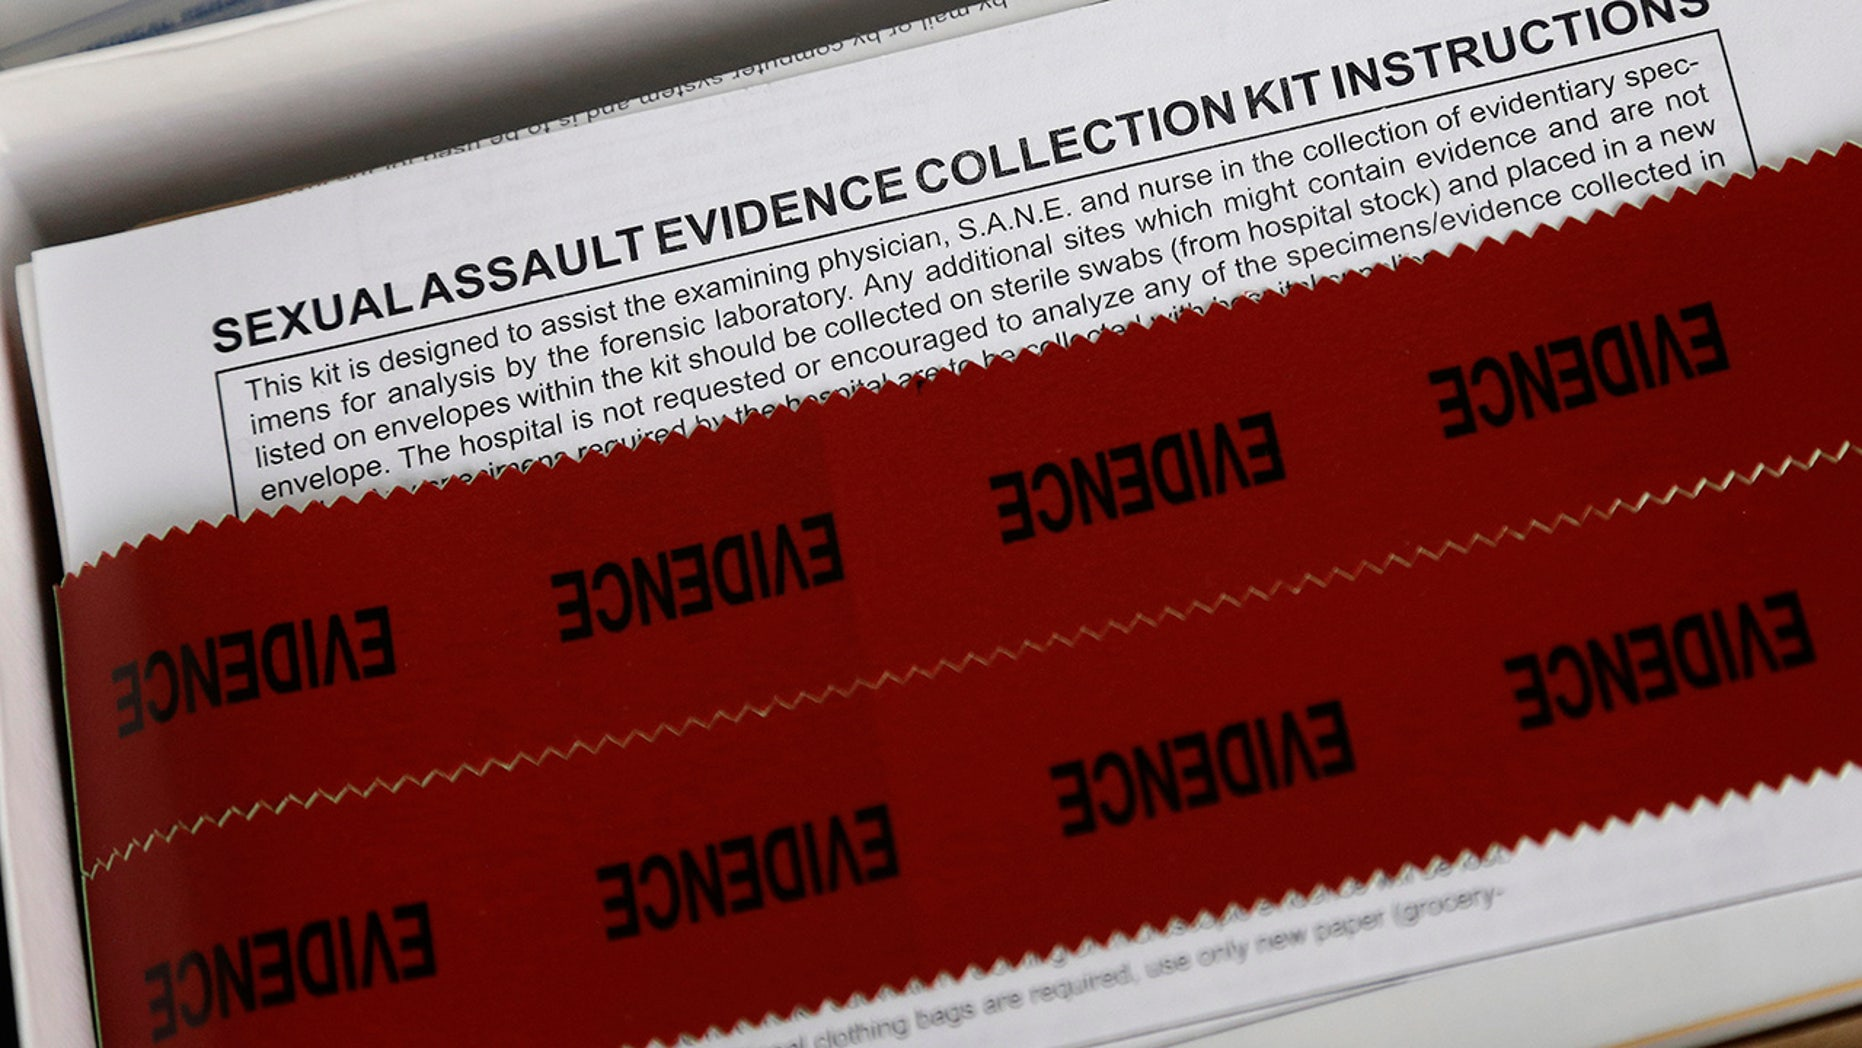 A bipartisan group of lawmakers in both the House and Senate introduced a bill this month to expand access to forensic exams and provide additional guidance to states and hospitals on rape kits.